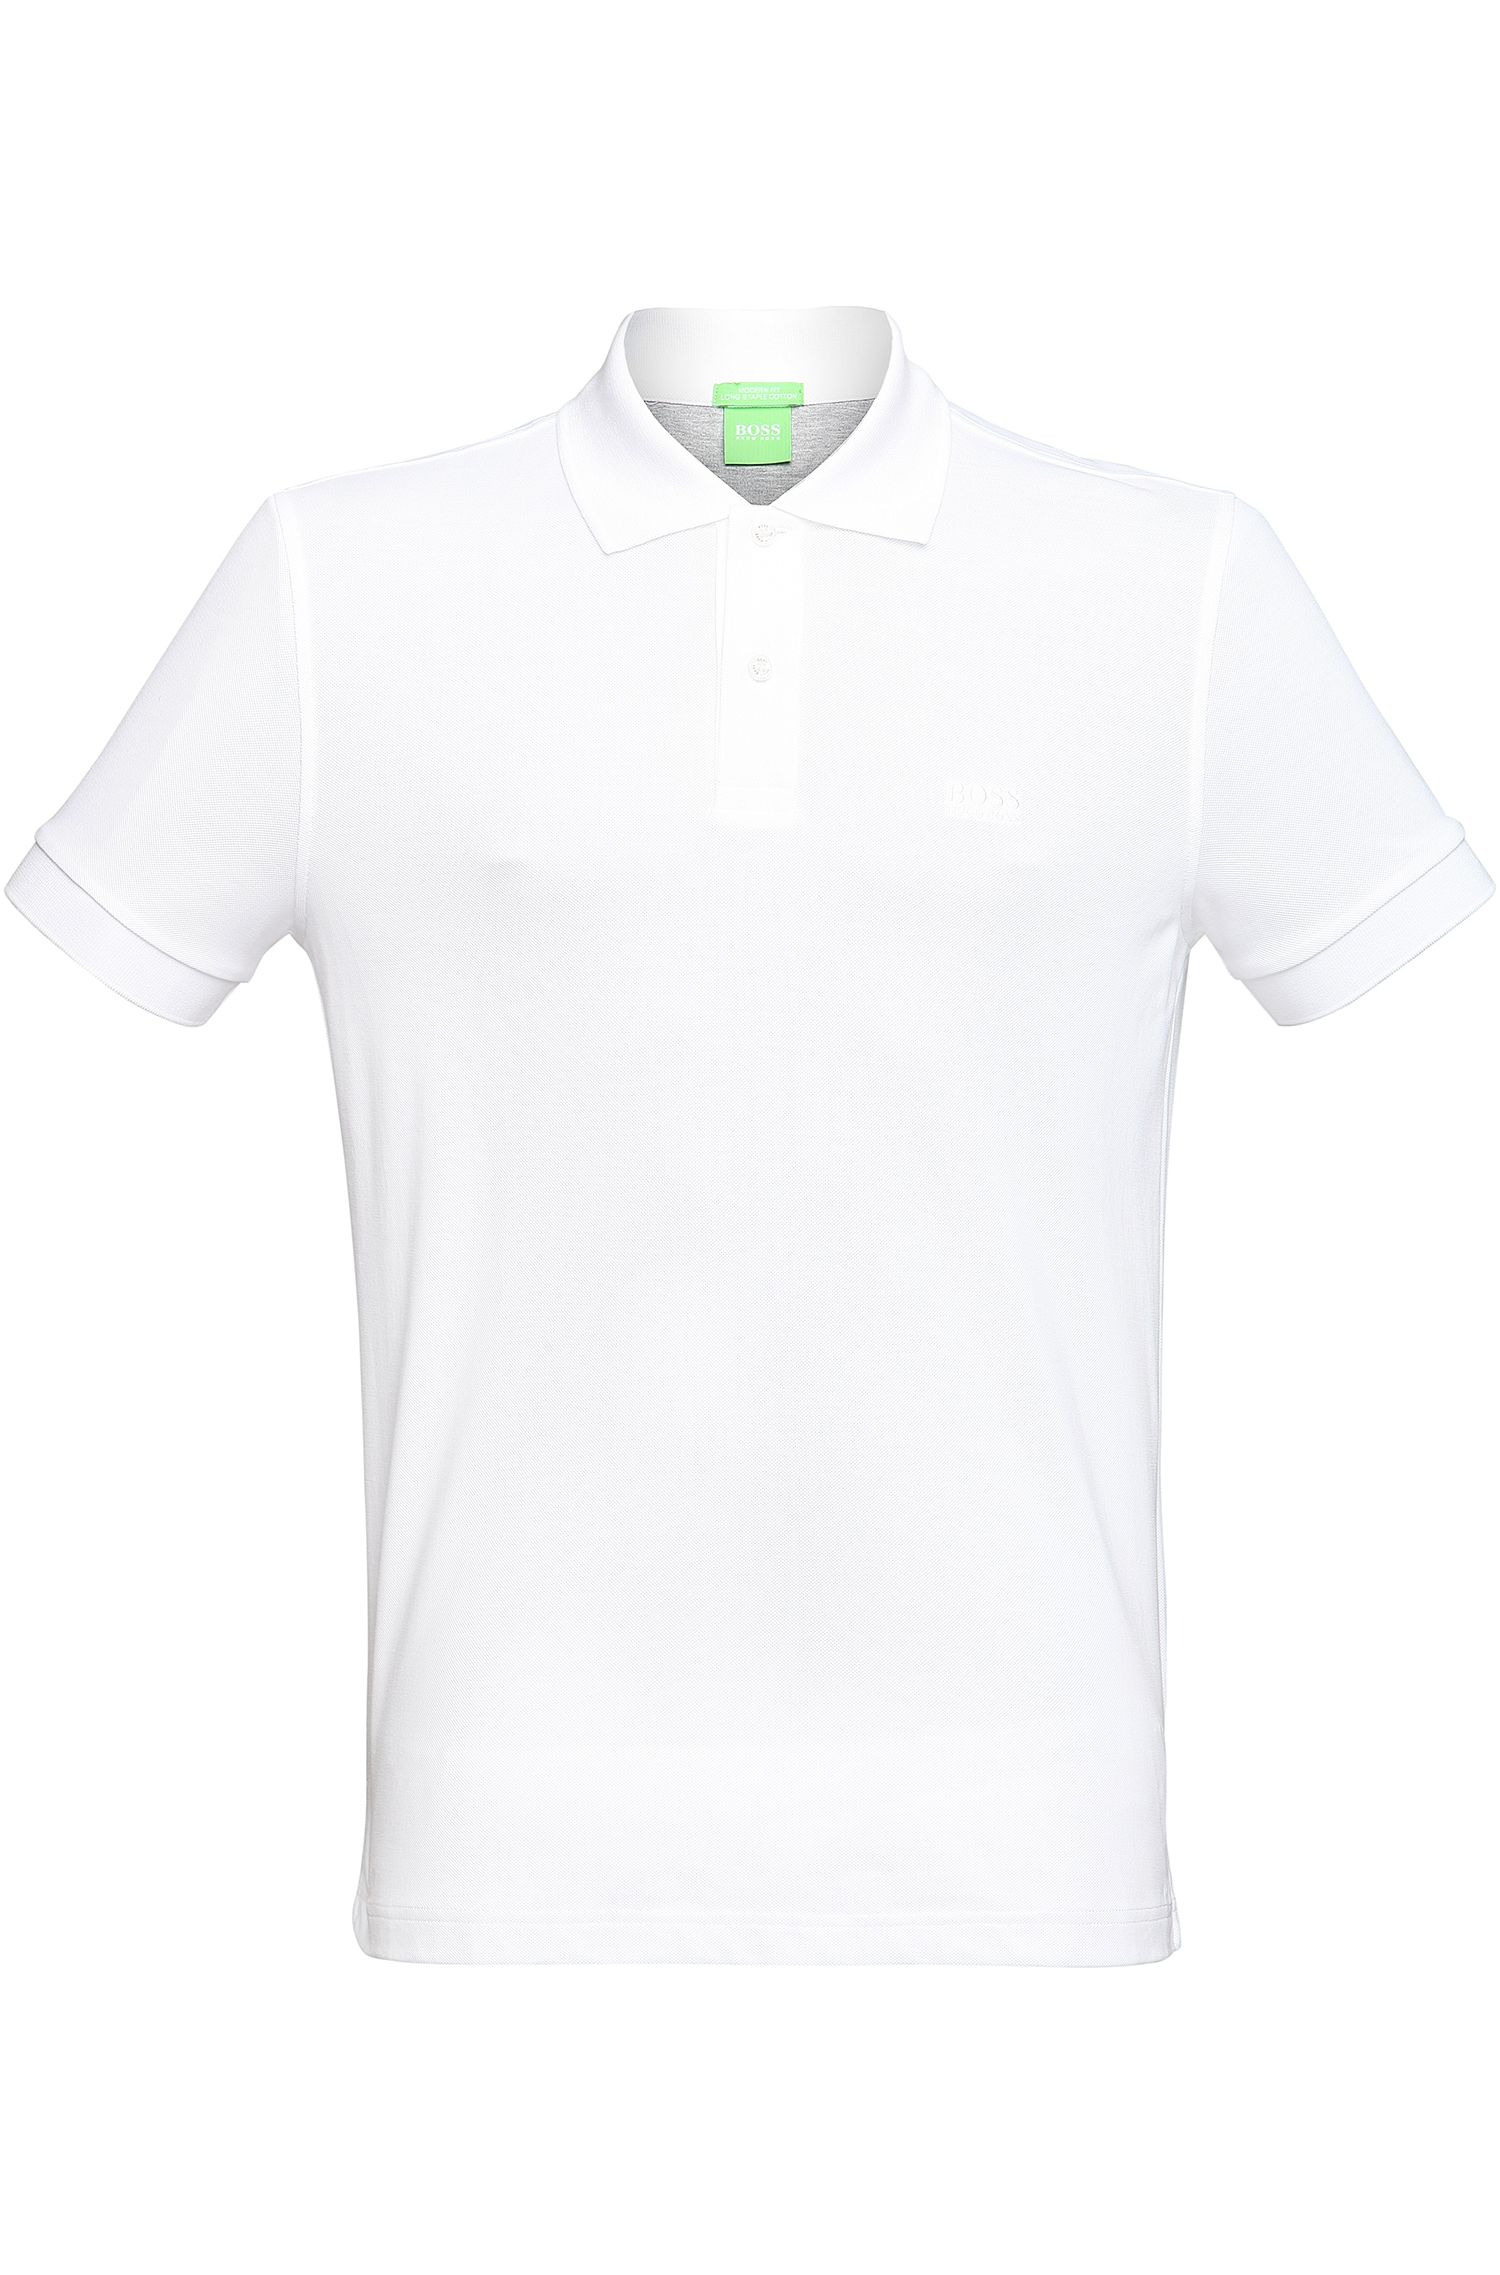 Regular-Fit Poloshirt aus Piqué mit Ton-in-Ton-Details